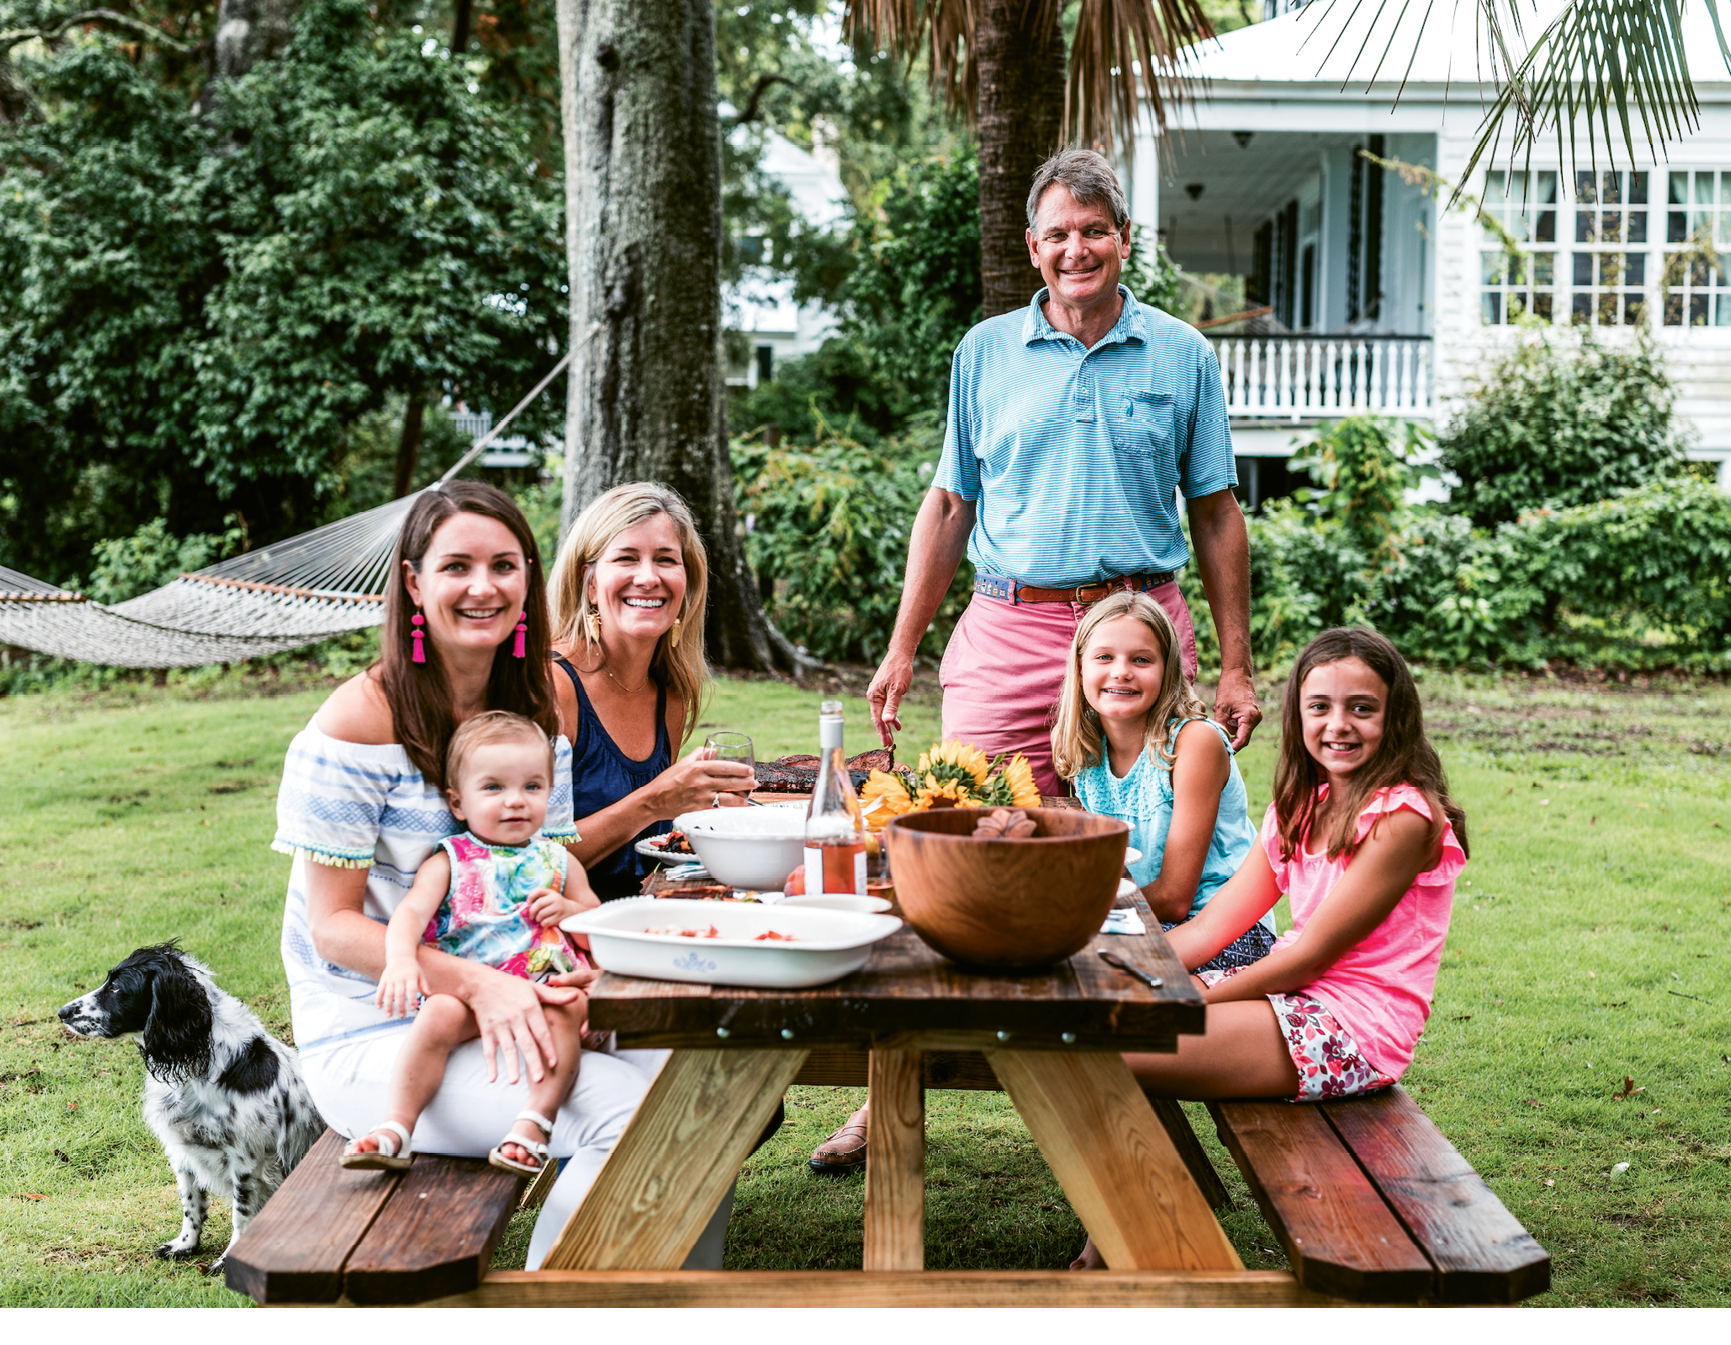 Jimmy Hagood, his wife, Anne Marie, and daughters Catherine and Mary Neill (with granddaughter Louisa) gather with friends on the river.